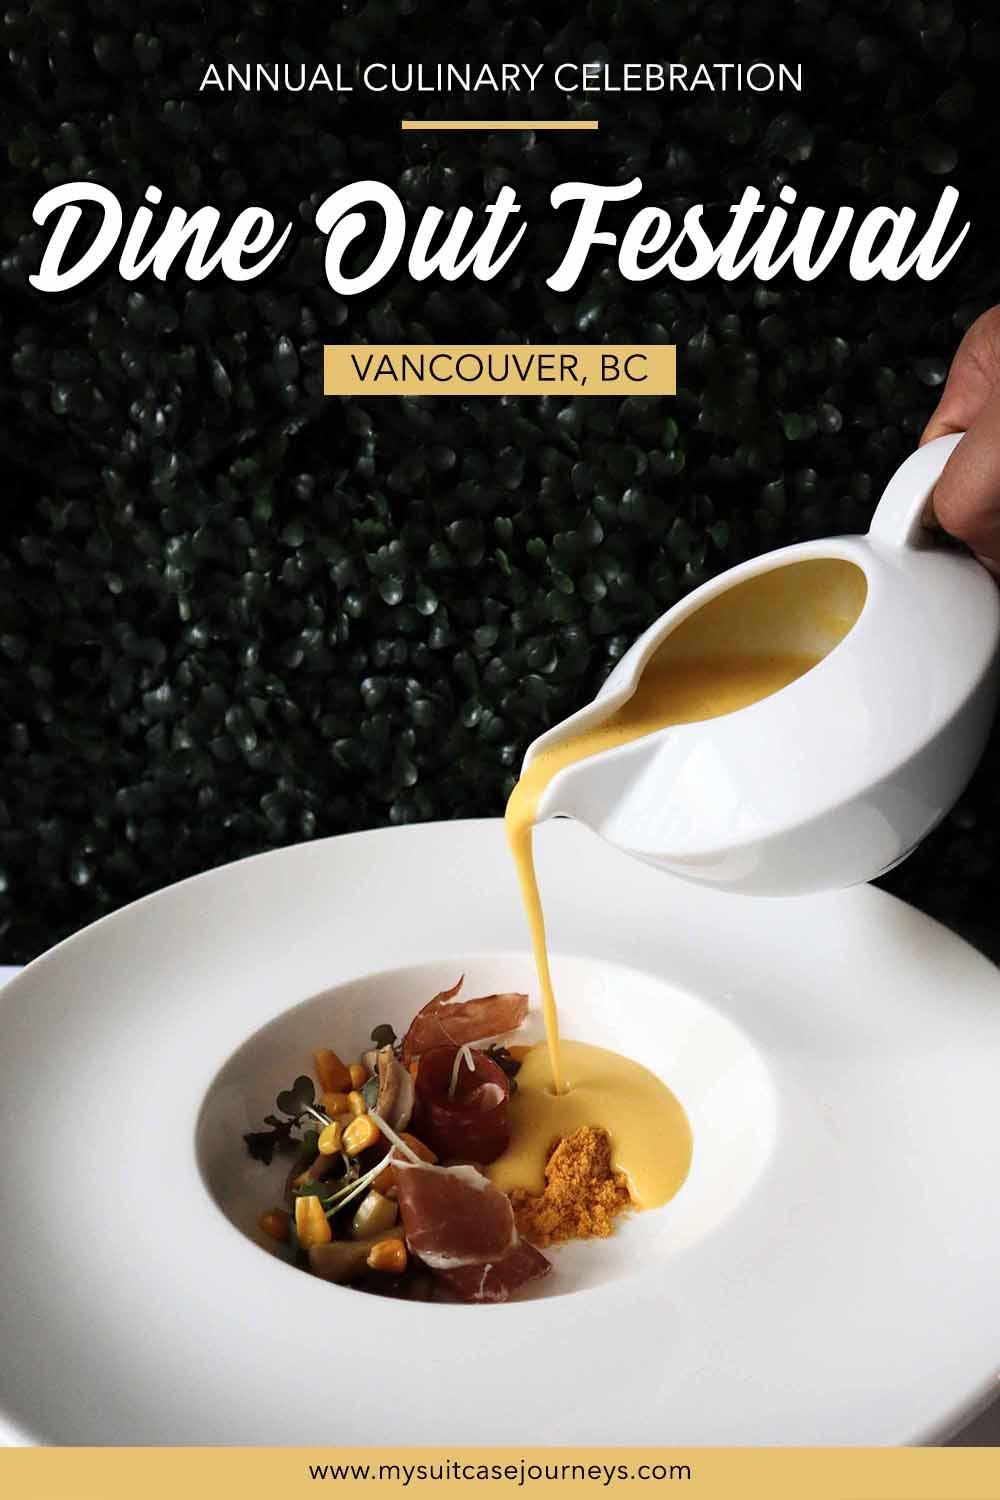 Dine Out Vancouver Festival - Canada's biggest annual culinary event!